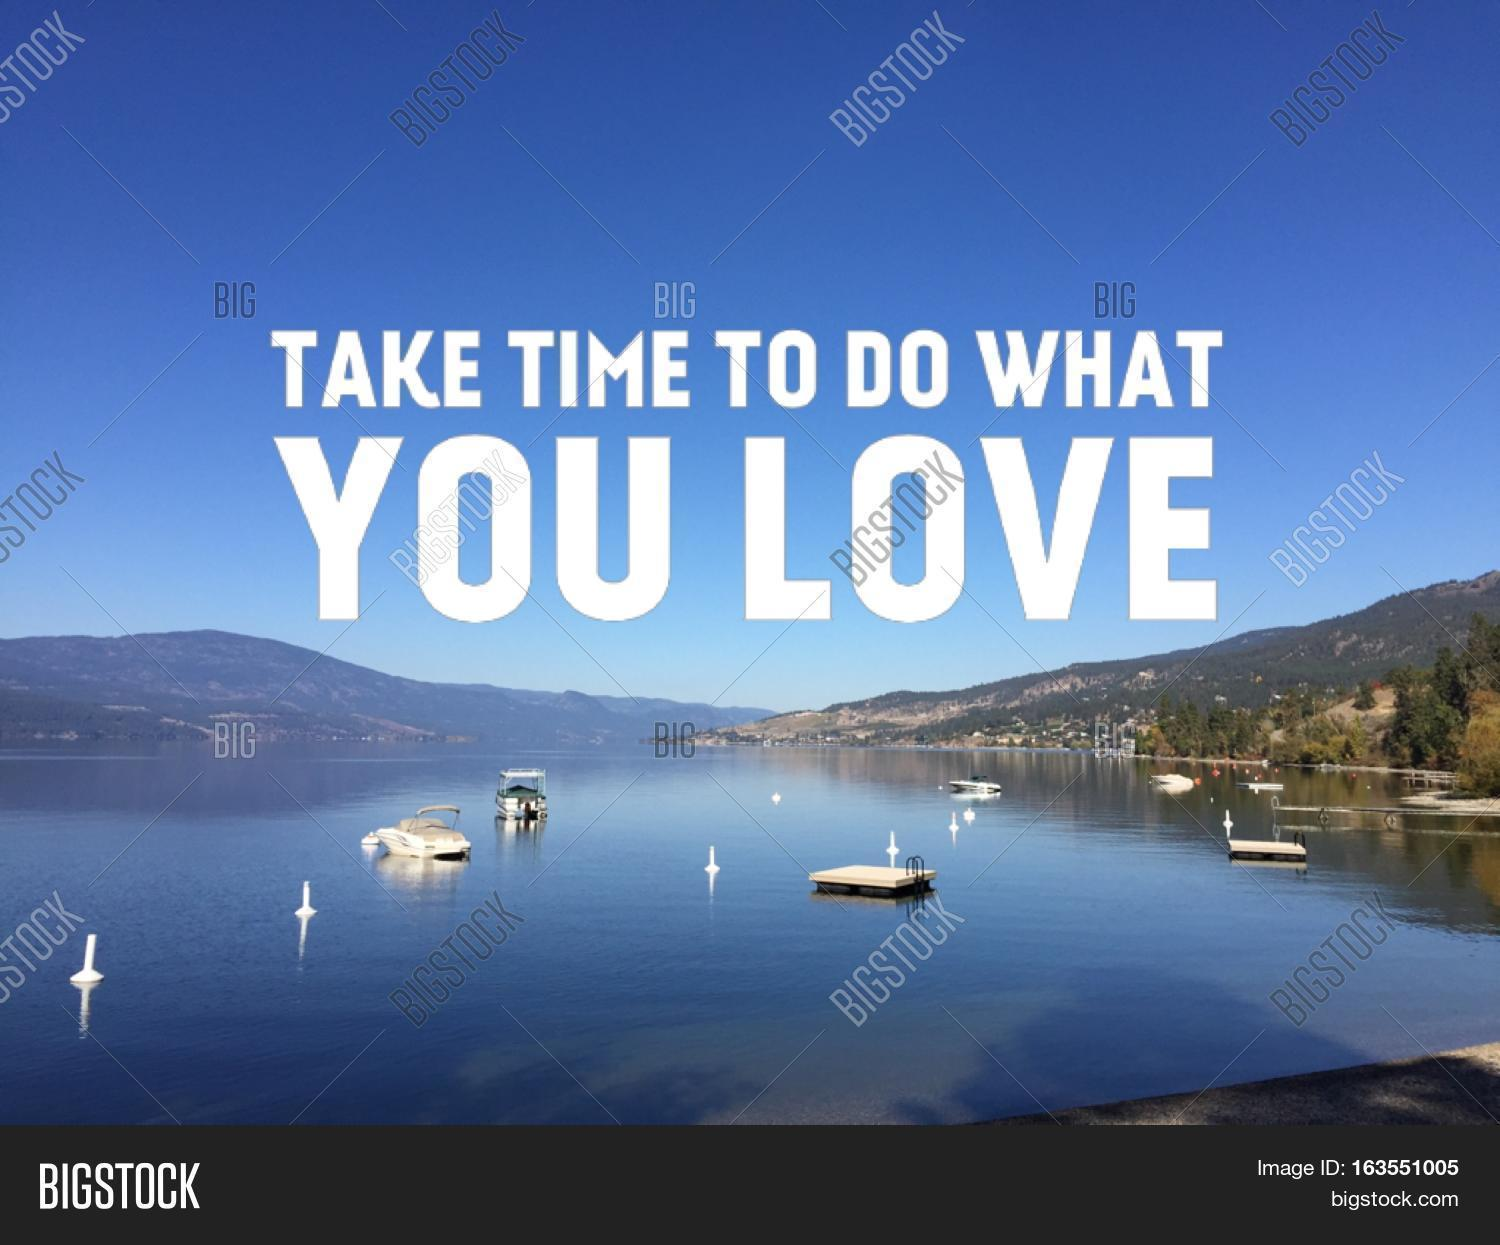 Inspirational Quote Image Photo Free Trial Bigstock